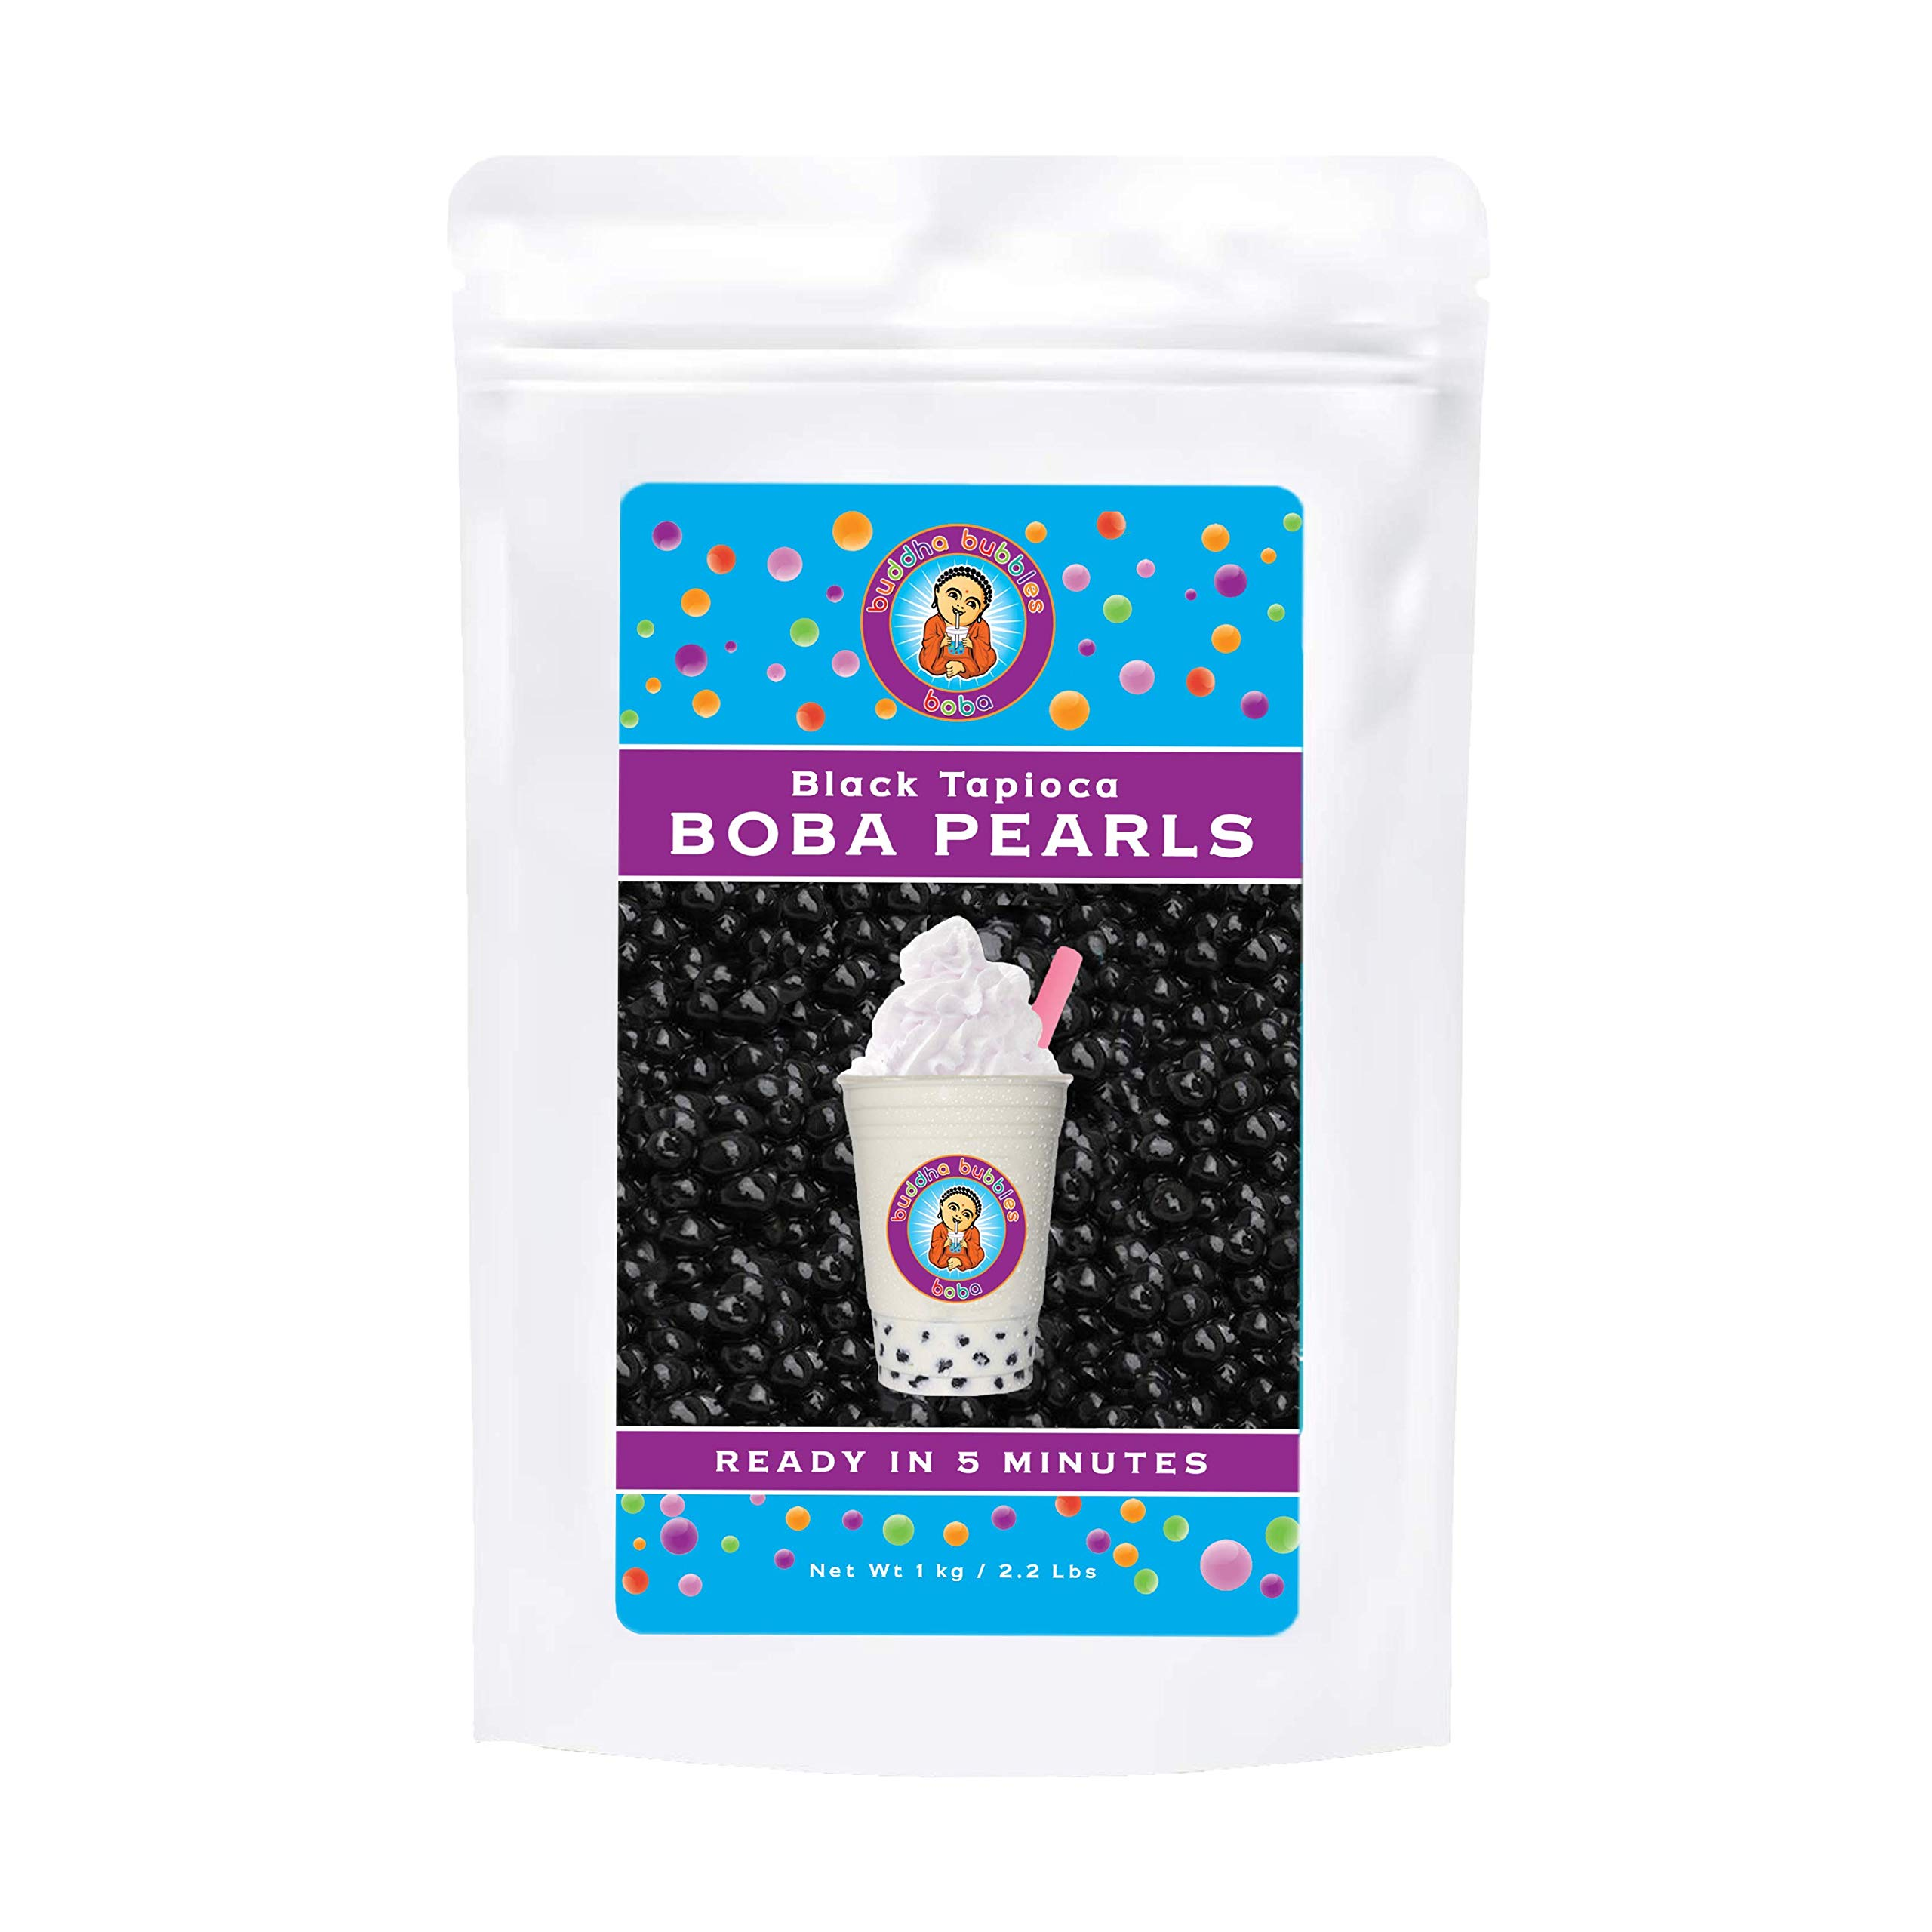 Boba / Black Tapioca Pearls By Buddha Bubbles Boba 1 Kilo (2.2 Pounds) | (1000 Grams) by Buddha Bubbles Boba